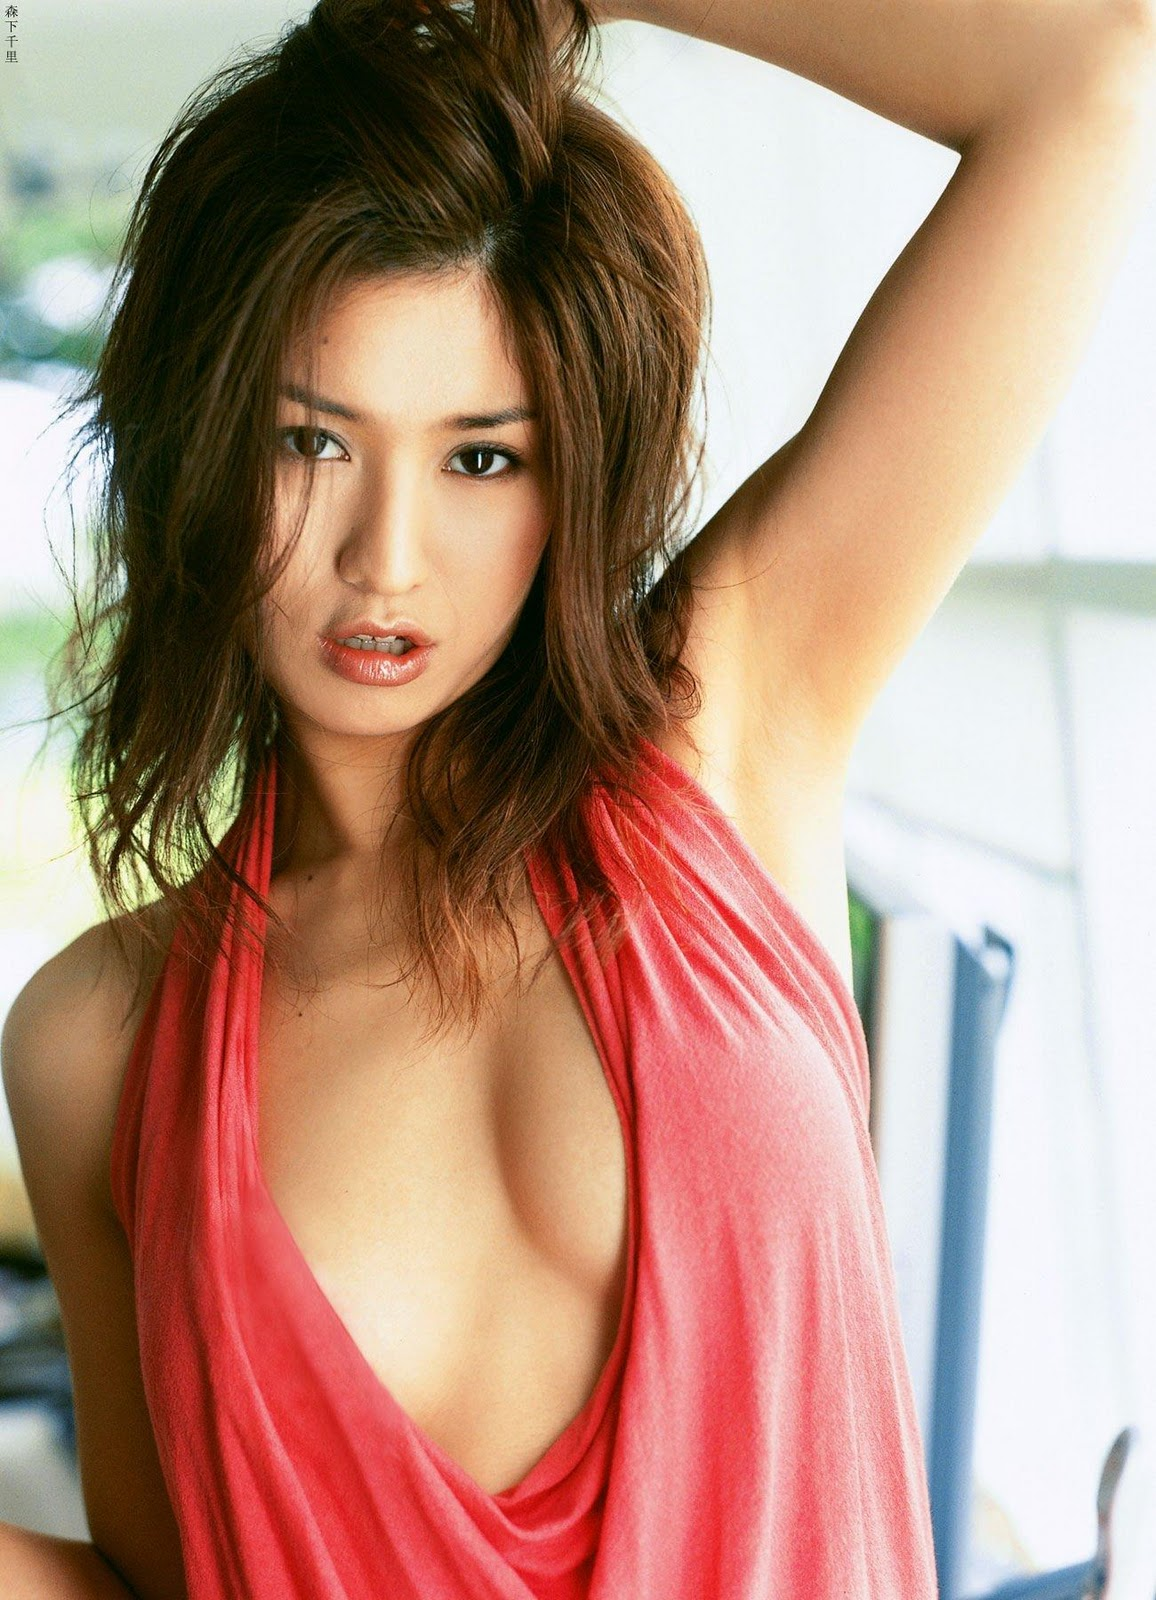 Beautiful asian models in bikinis sense